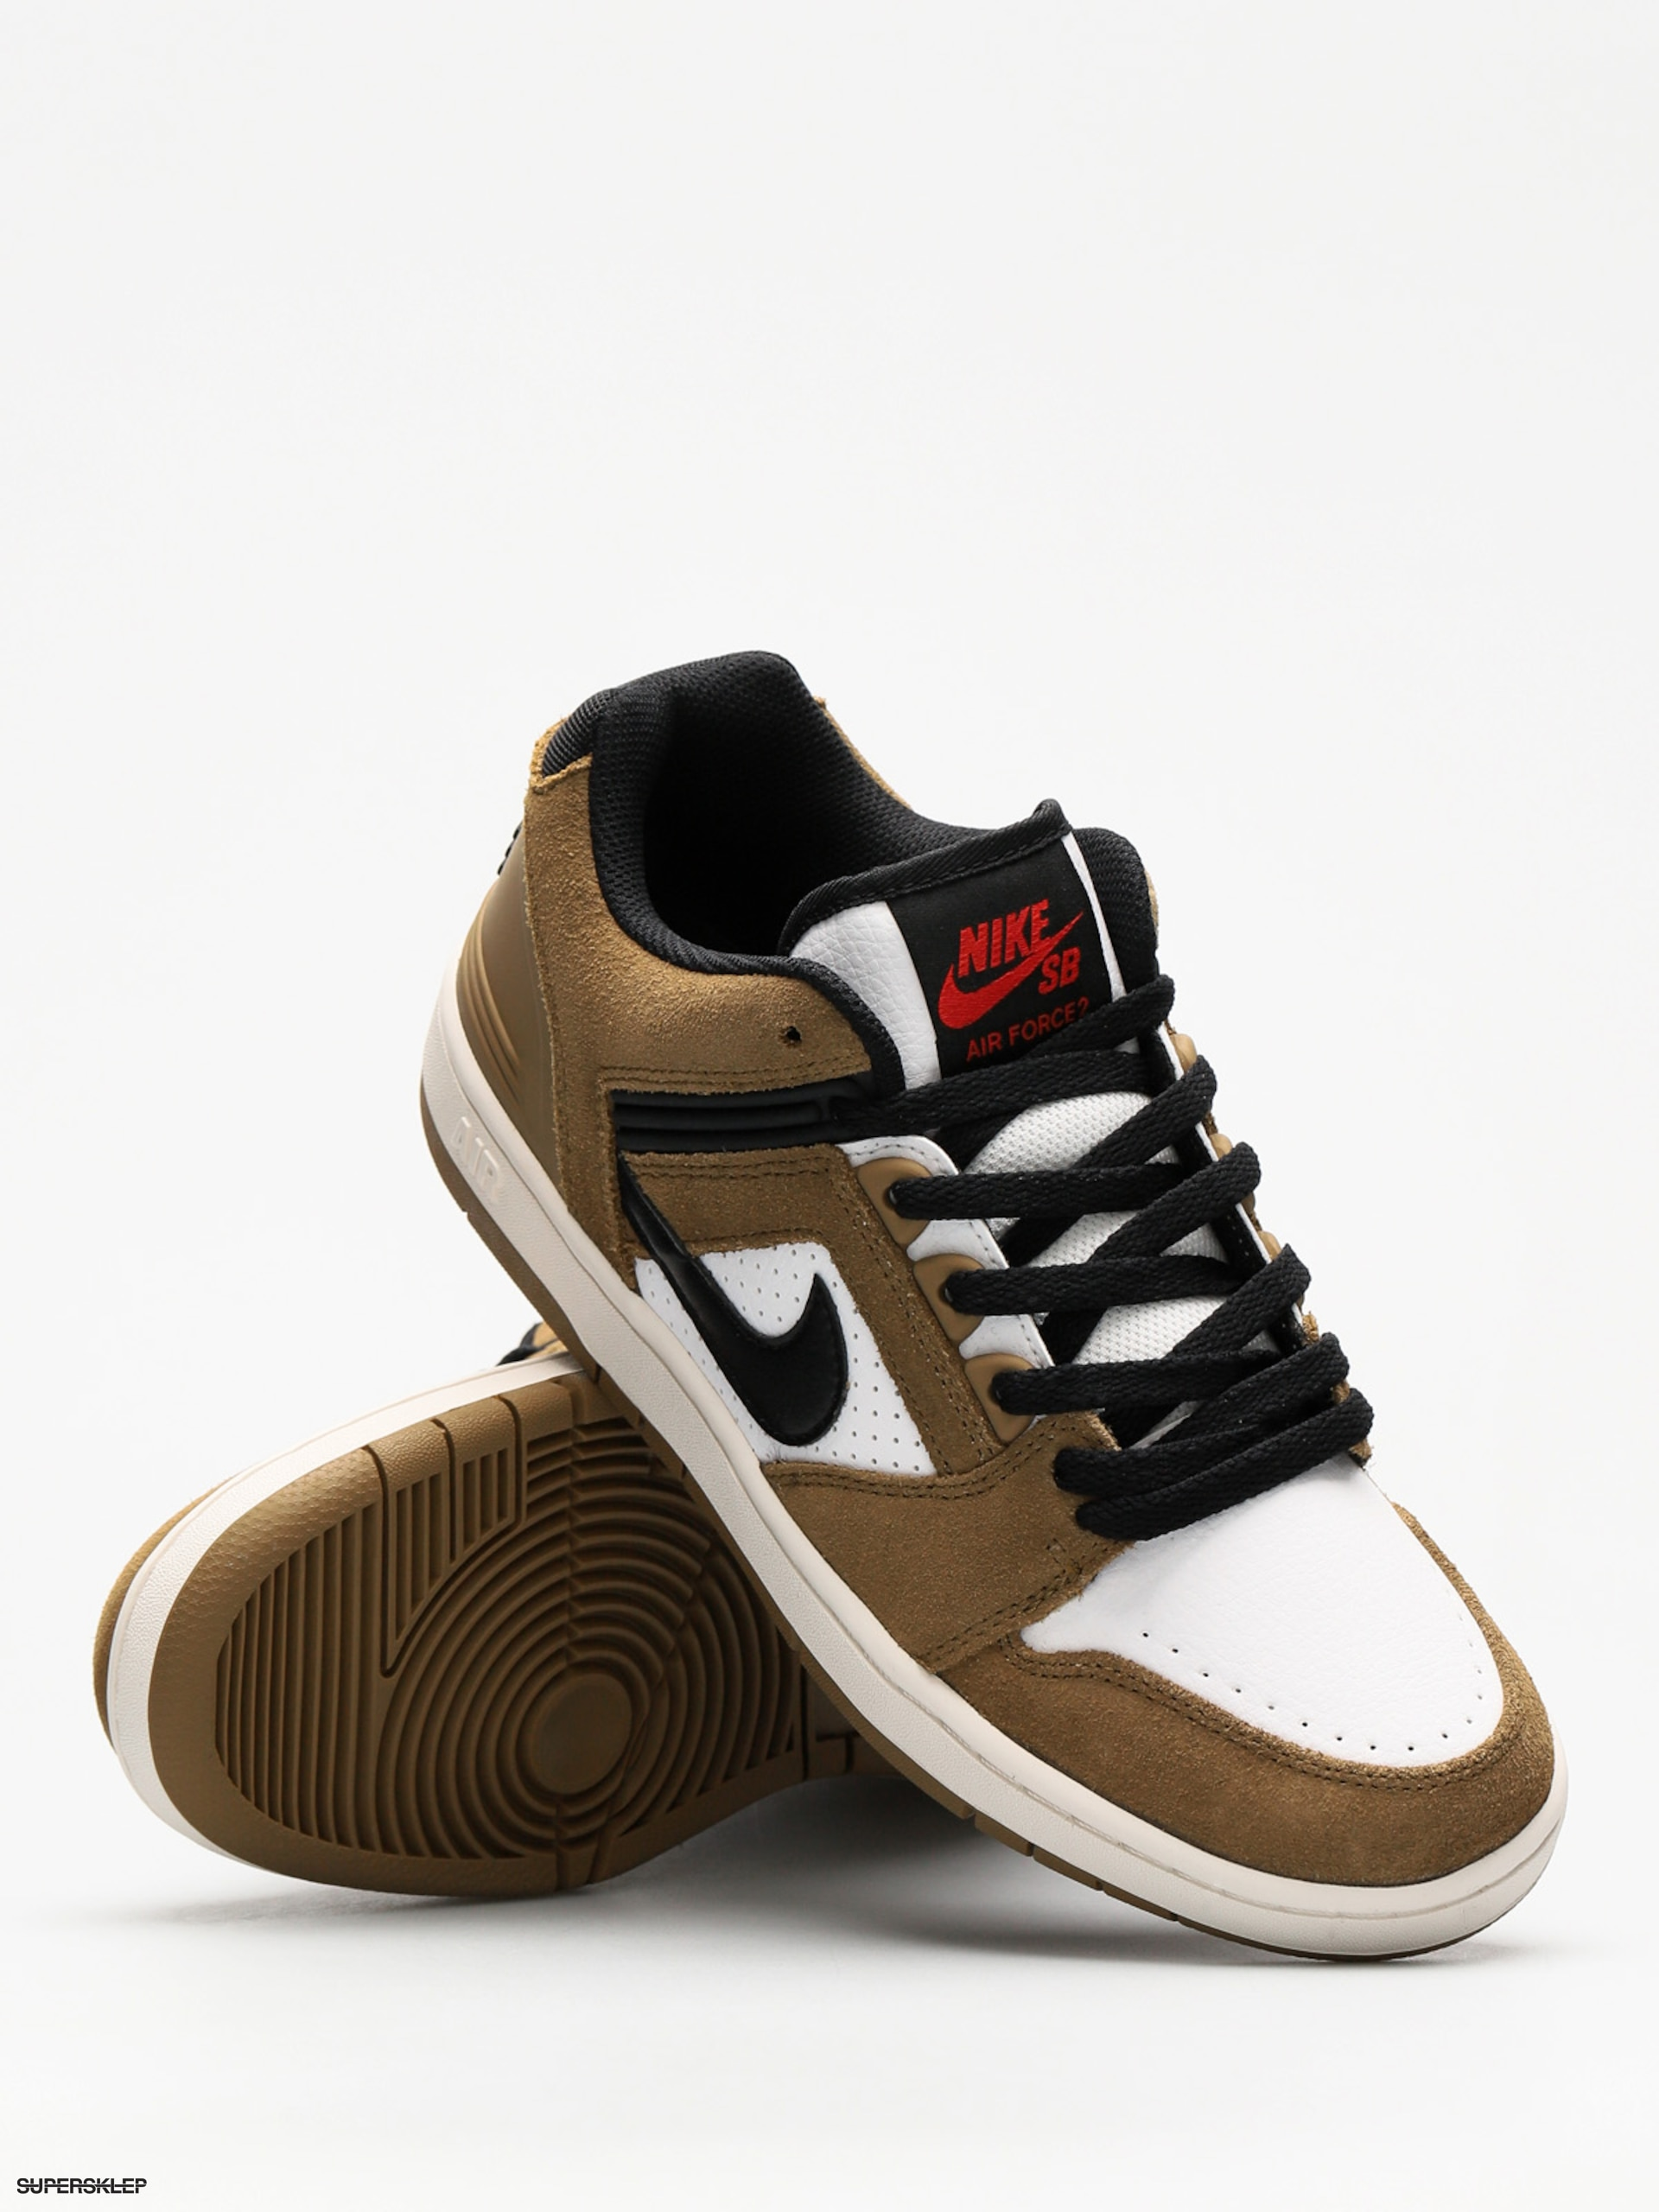 buty nike sb Nike SB Air Force II Low lichen brownblack white phantom